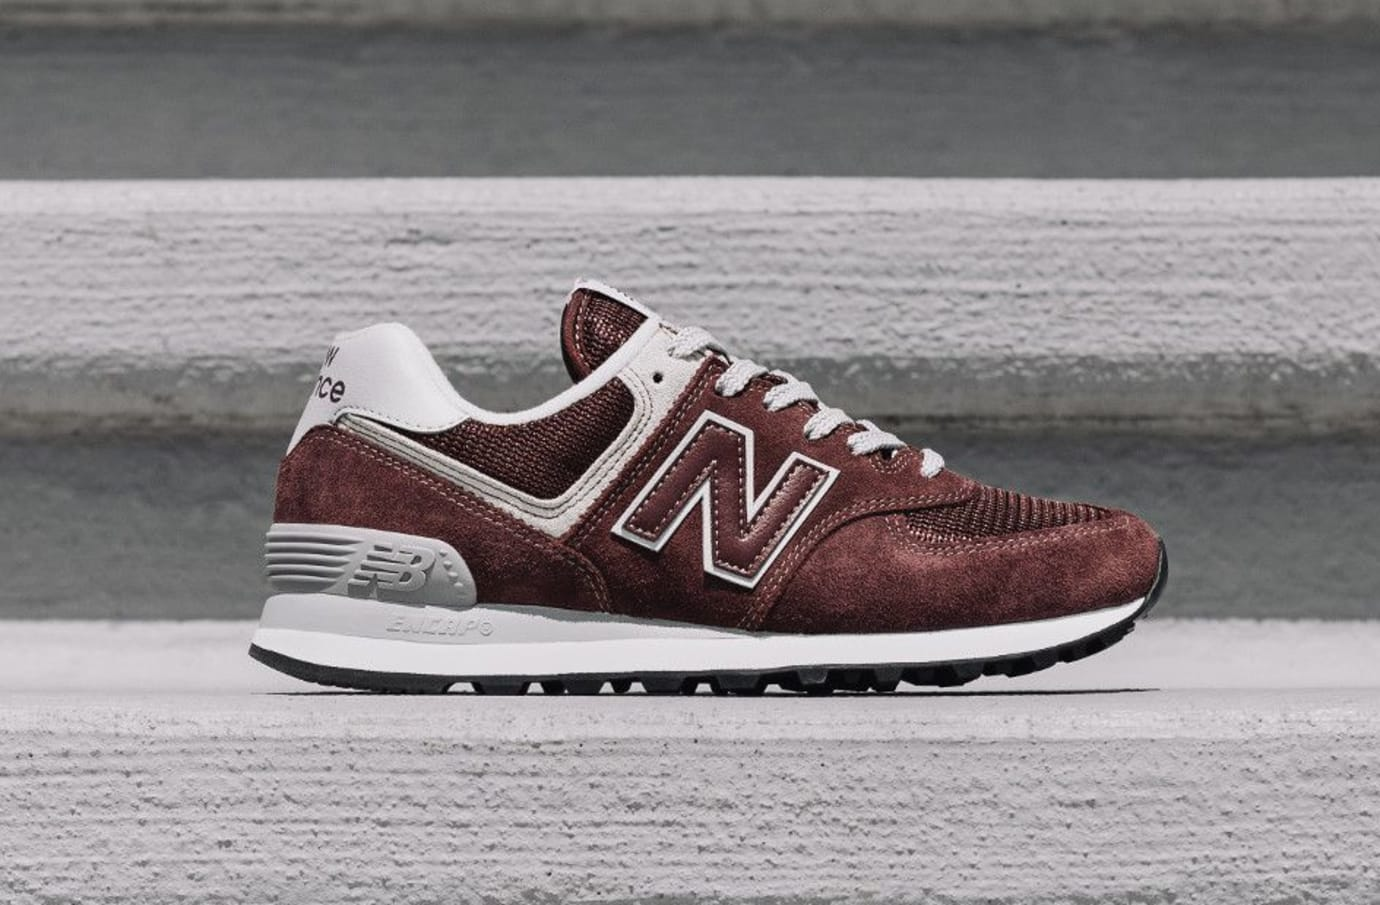 arrives united states discount New Balance 574 Update 2018 | Sole Collector